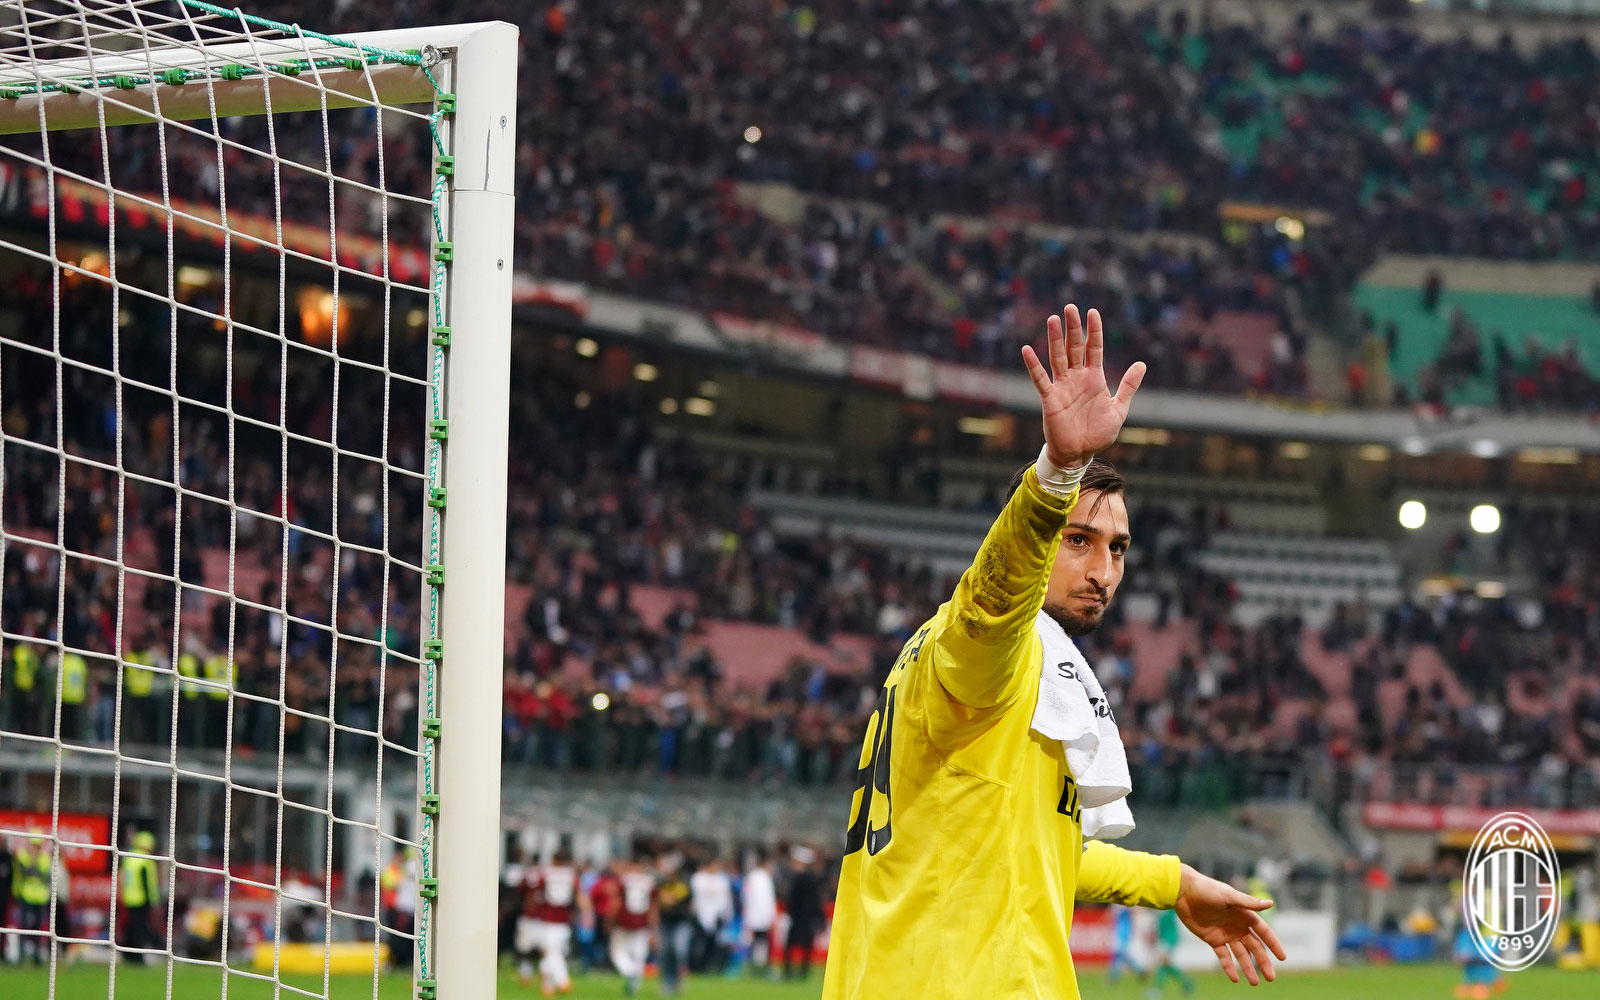 Gianluigi Donnarumma at the end of Milan-Napoli at Stadio San Siro on April 15, 2018. (@acmilan.com)